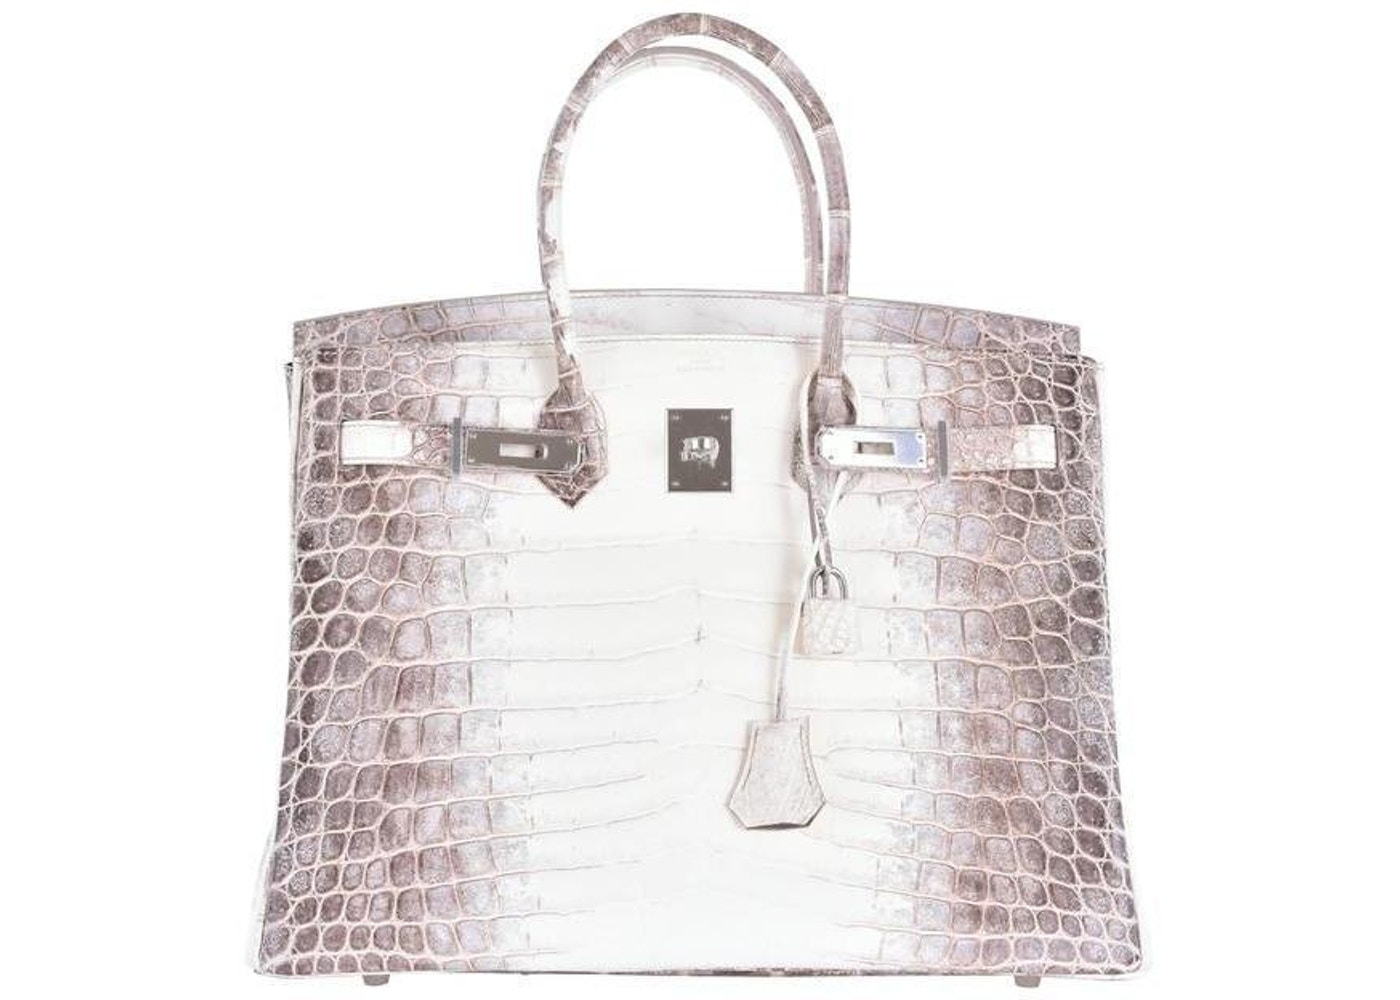 Himalayan Niloticus Crocodile Matte 35 White, Brown by Hermes, available on stockx.com for $2300 Kylie Jenner Bags Exact Product